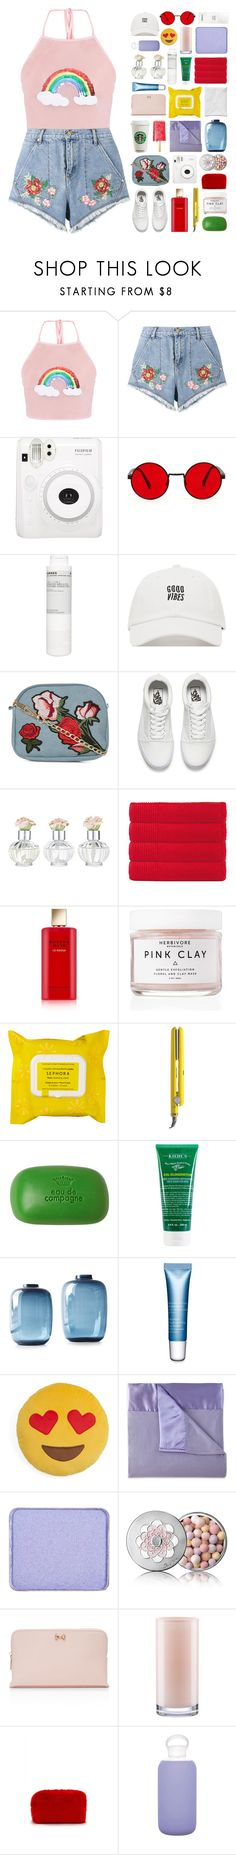 """""""~Under the Rainbow~"""" by amethyst0818 ❤ liked on Polyvore featuring House of Holland, Fuji, Korres, New Look, Vans, Shabby Chic, Olivier Desforges, Estée Lauder, Herbivore and Sephora Collection"""